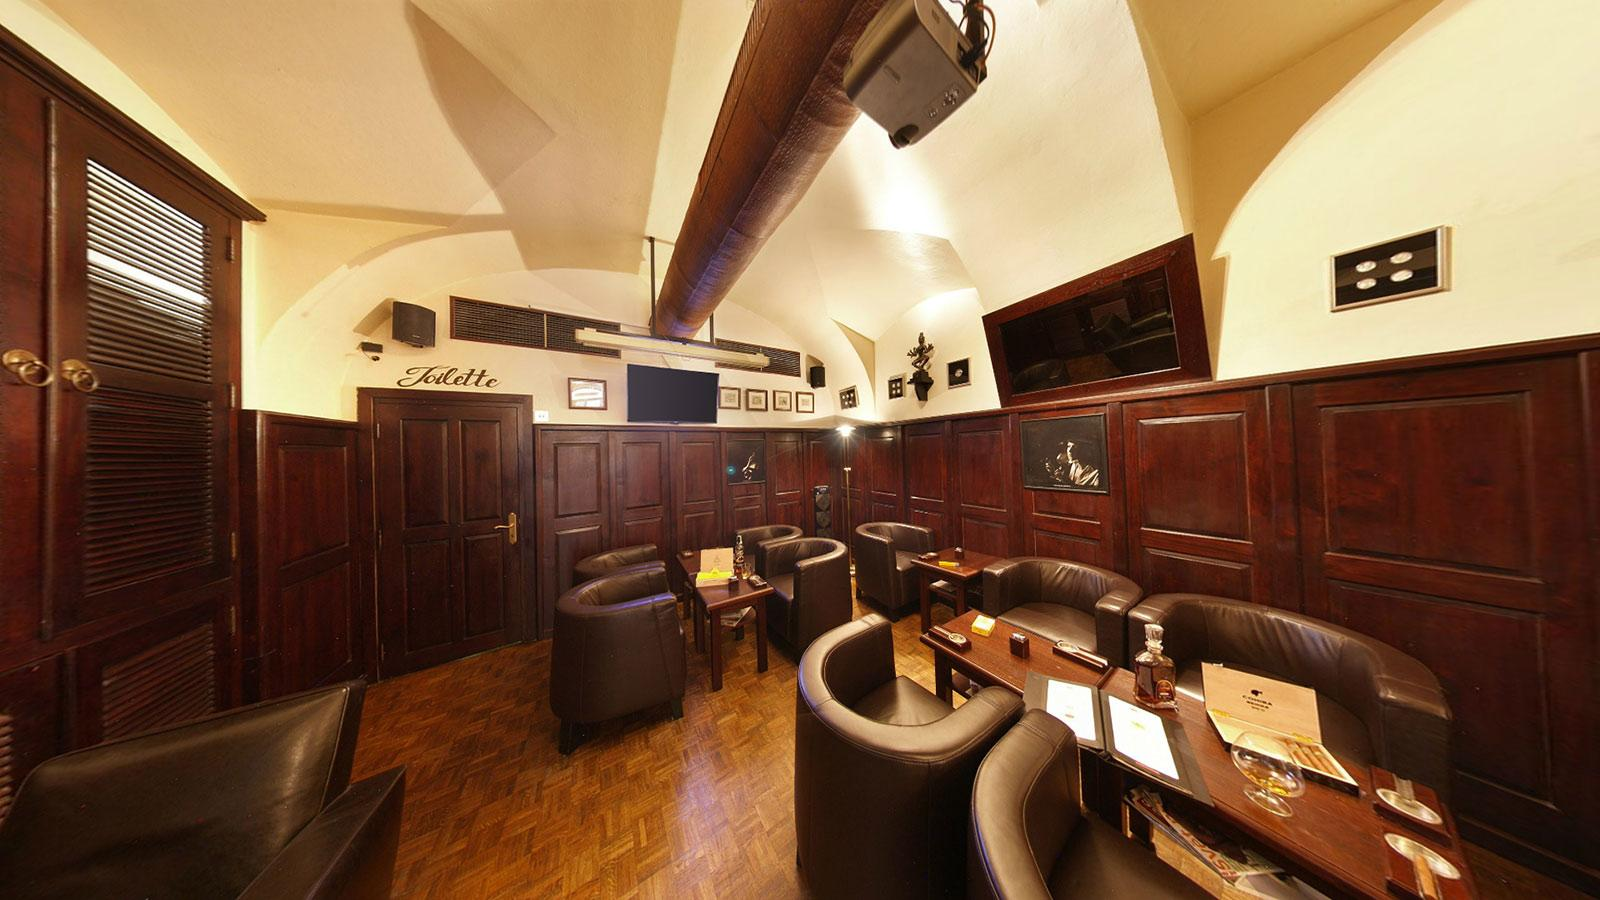 Walk past the counter and humidor into the lounge where there is a TV and 20 or so overstuffed leather chairs.